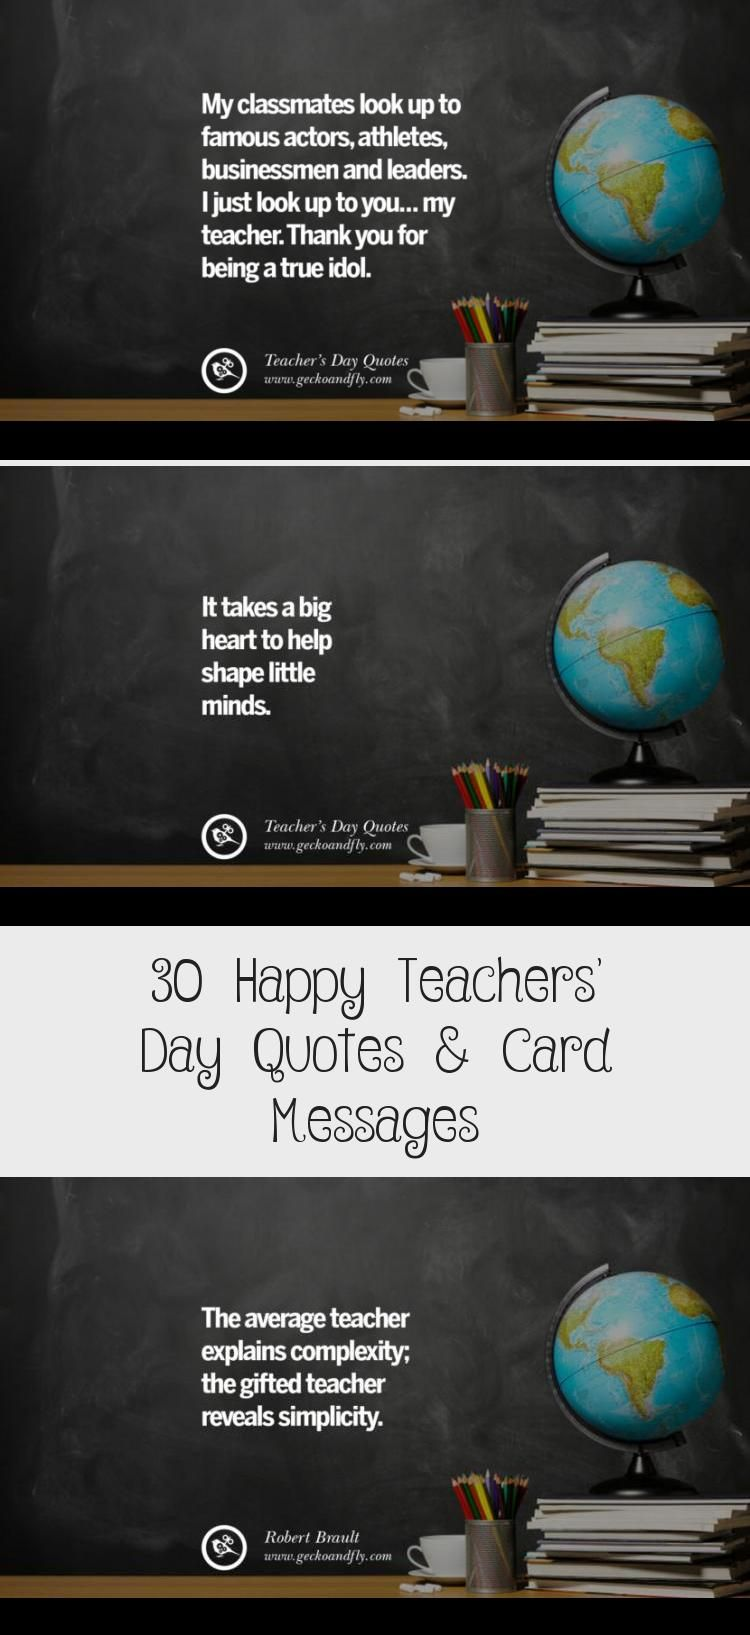 30 Happy Teachers Day Quotes Card Messages Quotes In 2020 Happy Teachers Day Education Quotes Inspirational Quote Cards